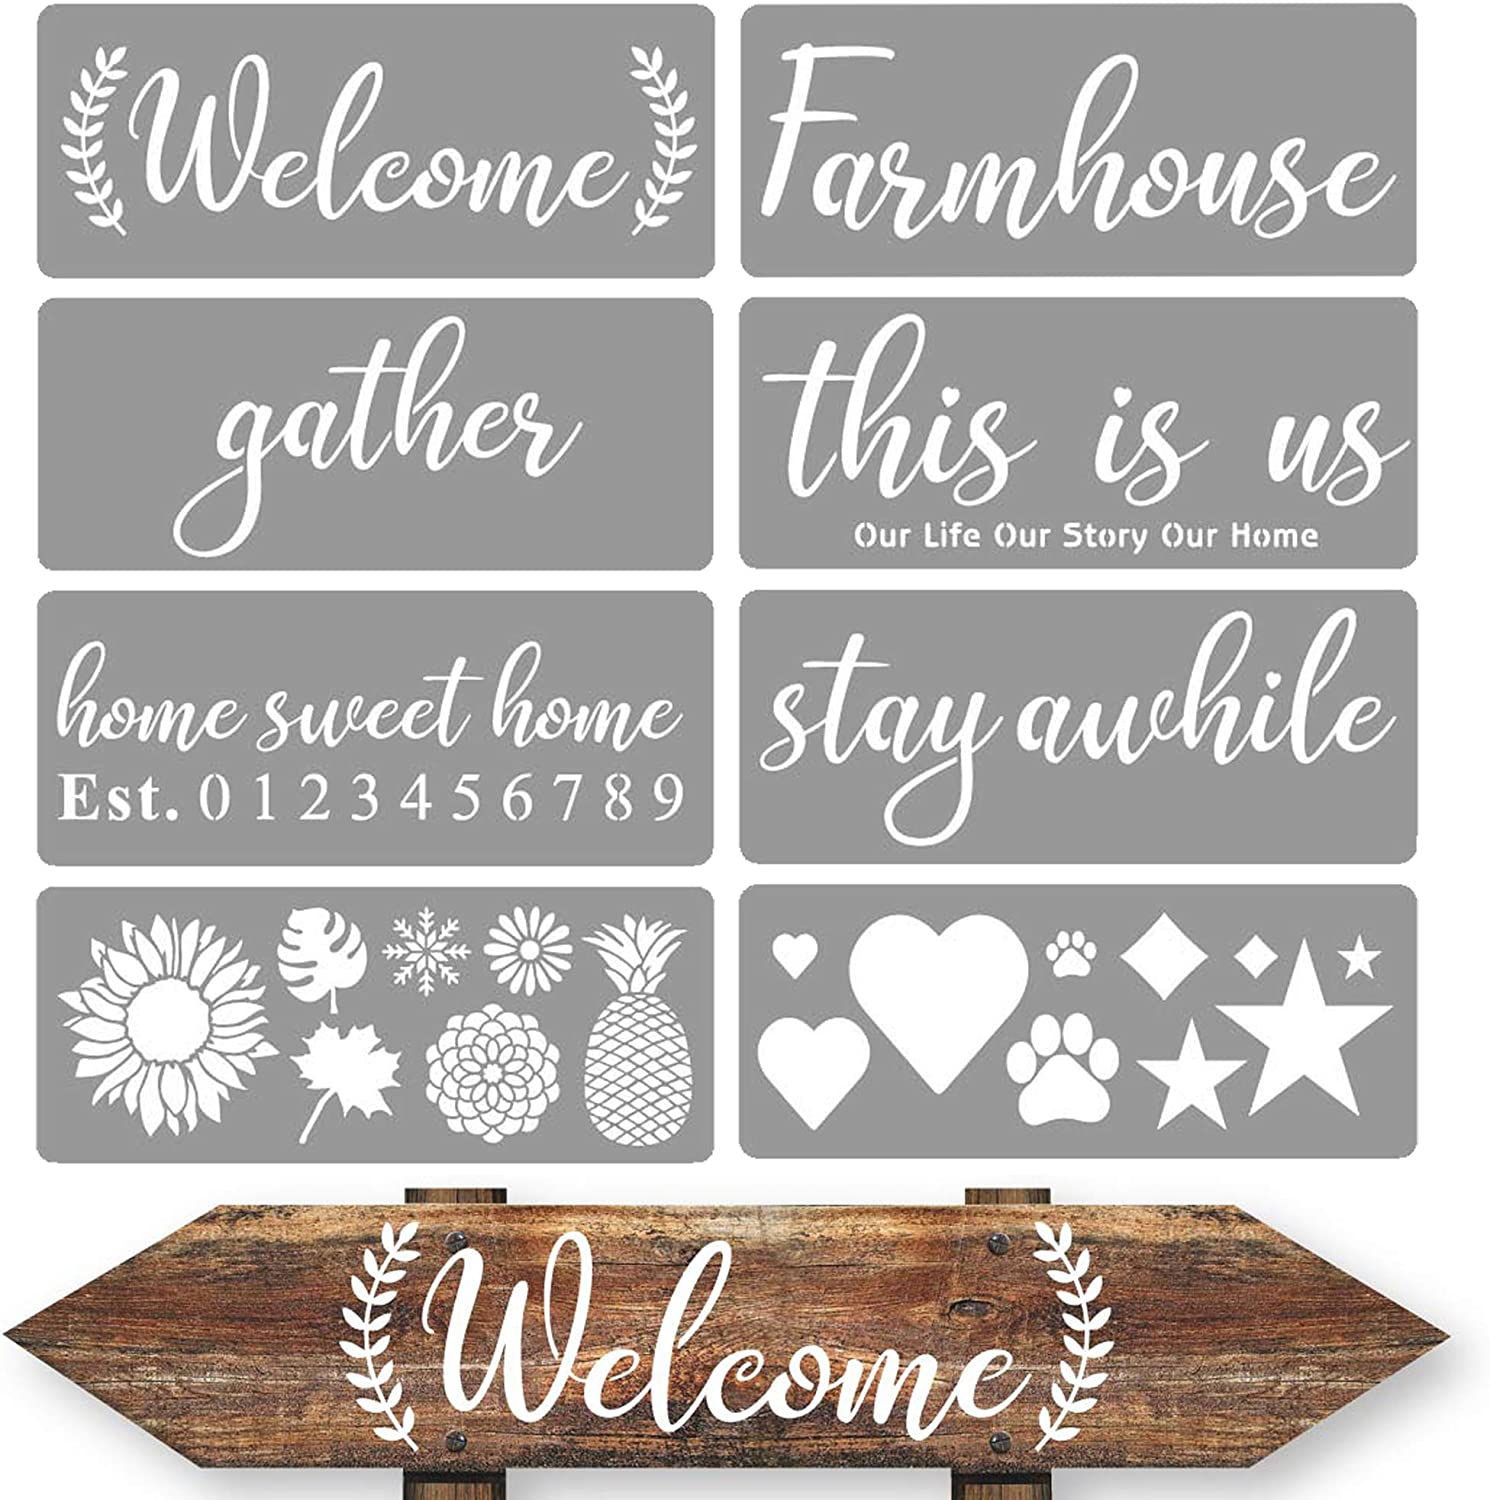 10 Pieces Farmhouse Stencils Farm Reusable Stencils Farm Theme Painting Stencils for Scrapbooking Drawing Tracing DIY Furniture Wall Floor Fabric Decors 2 Sizes and 10 Patterns